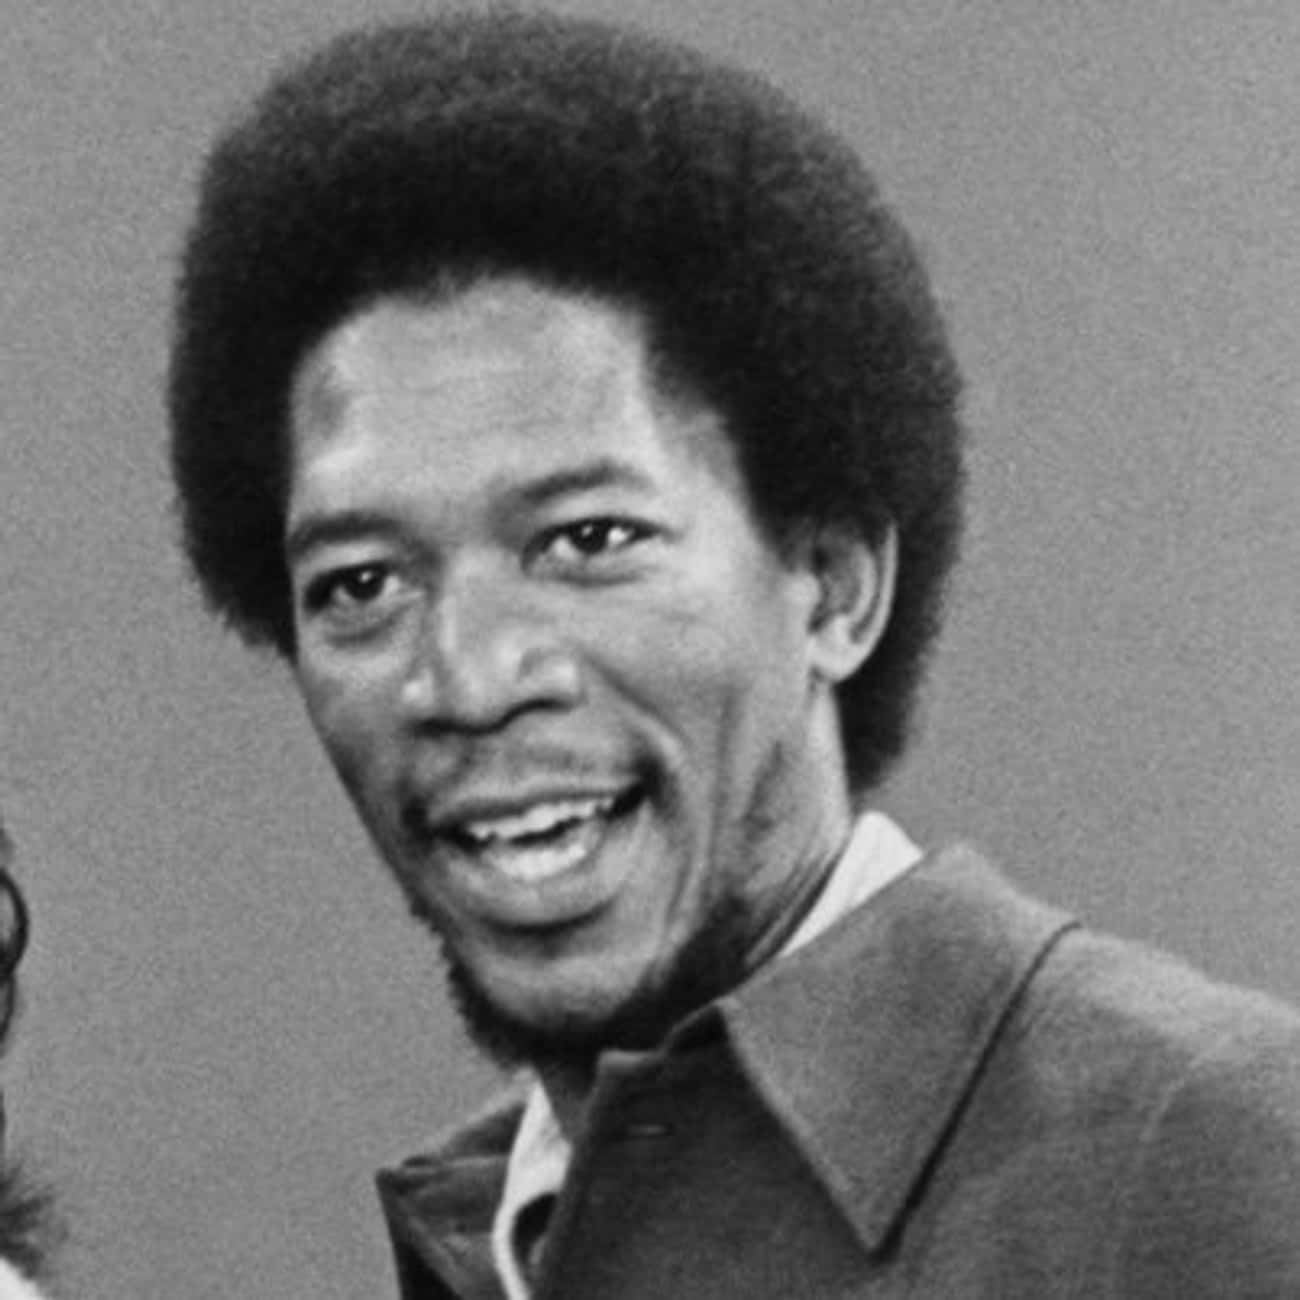 Young Morgan Freeman About to  is listed (or ranked) 3 on the list 5 Photos of Young Morgan Freeman